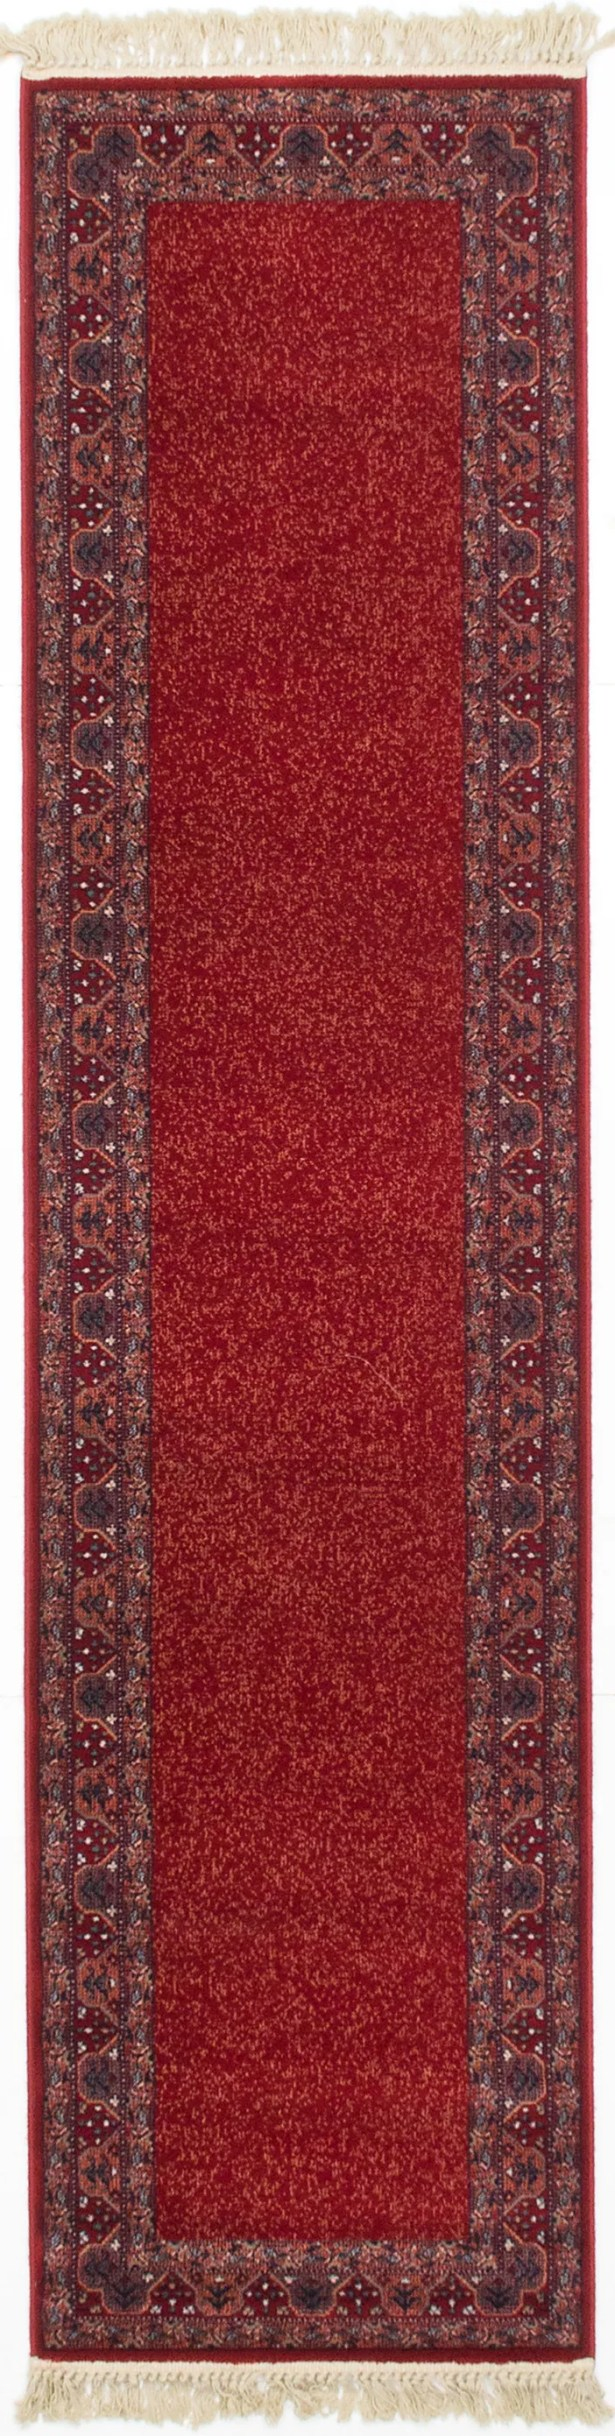 Hailo Red Wool Area Rug